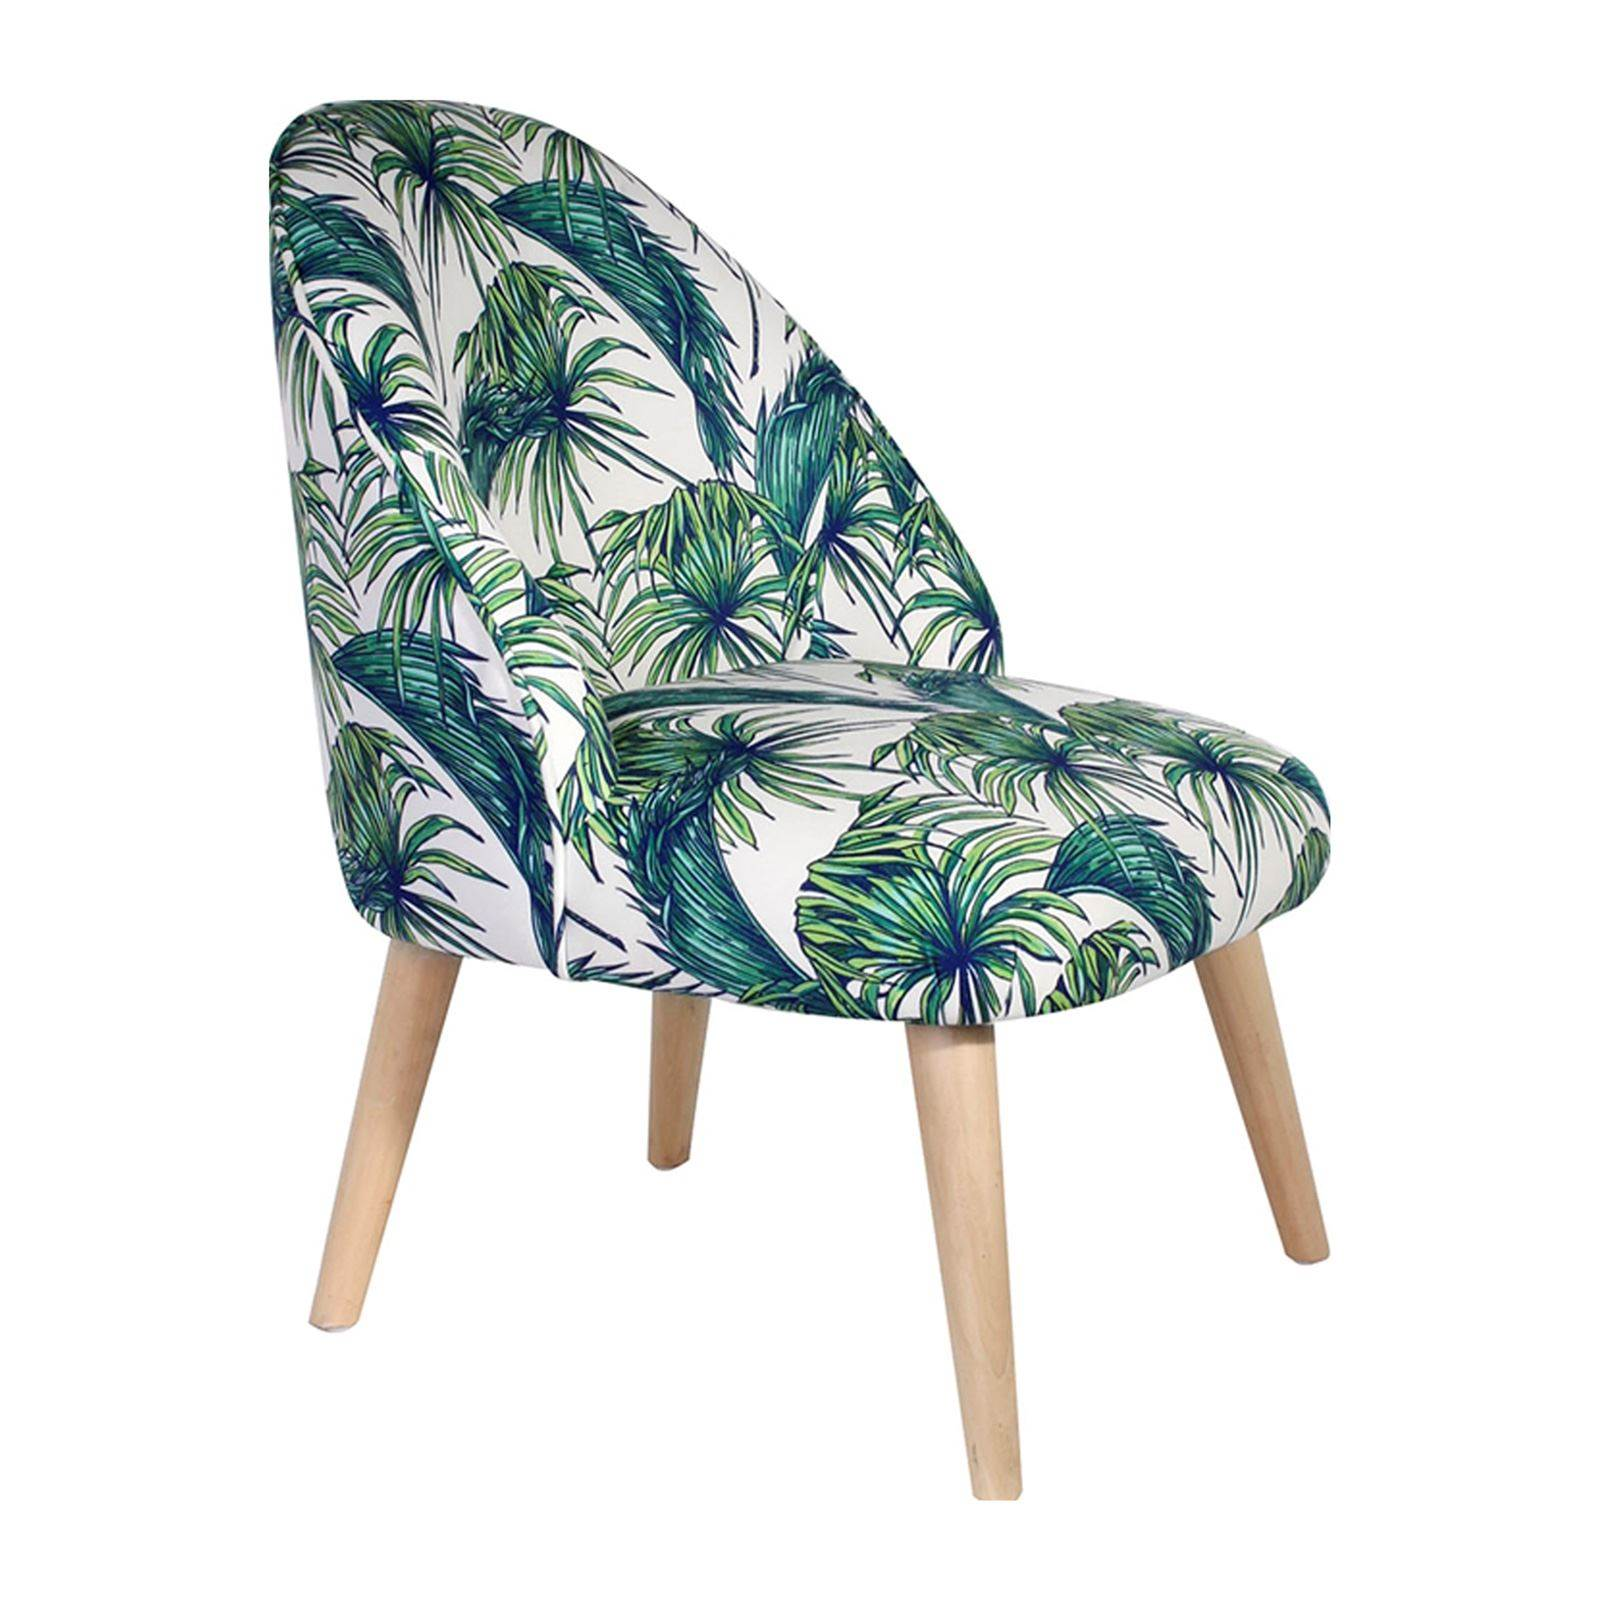 The home deco factory fauteuil jungle blanc brandalley - Fauteuil enfant jungle ...